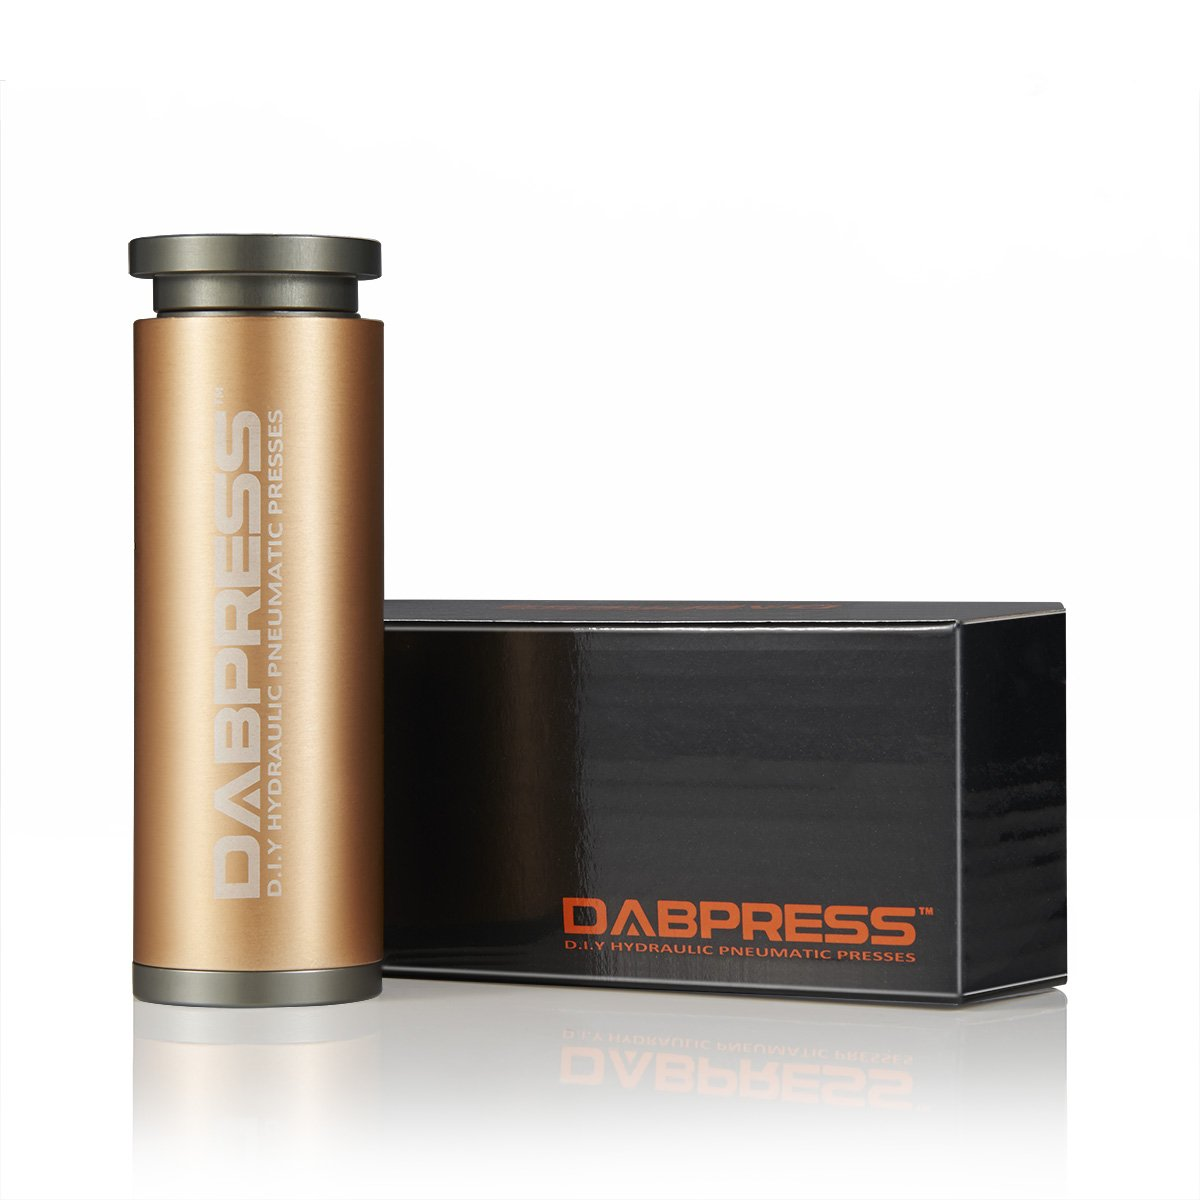 Dabpress iBudtek dp-pm3015r Rosin Pre-press Mold [Rosin Puck Maker] - Well Pairs dp-bt160ns Rosin Press Bags - Made of Anodized Aluminum - Works by Hand Pressure by Dabpress